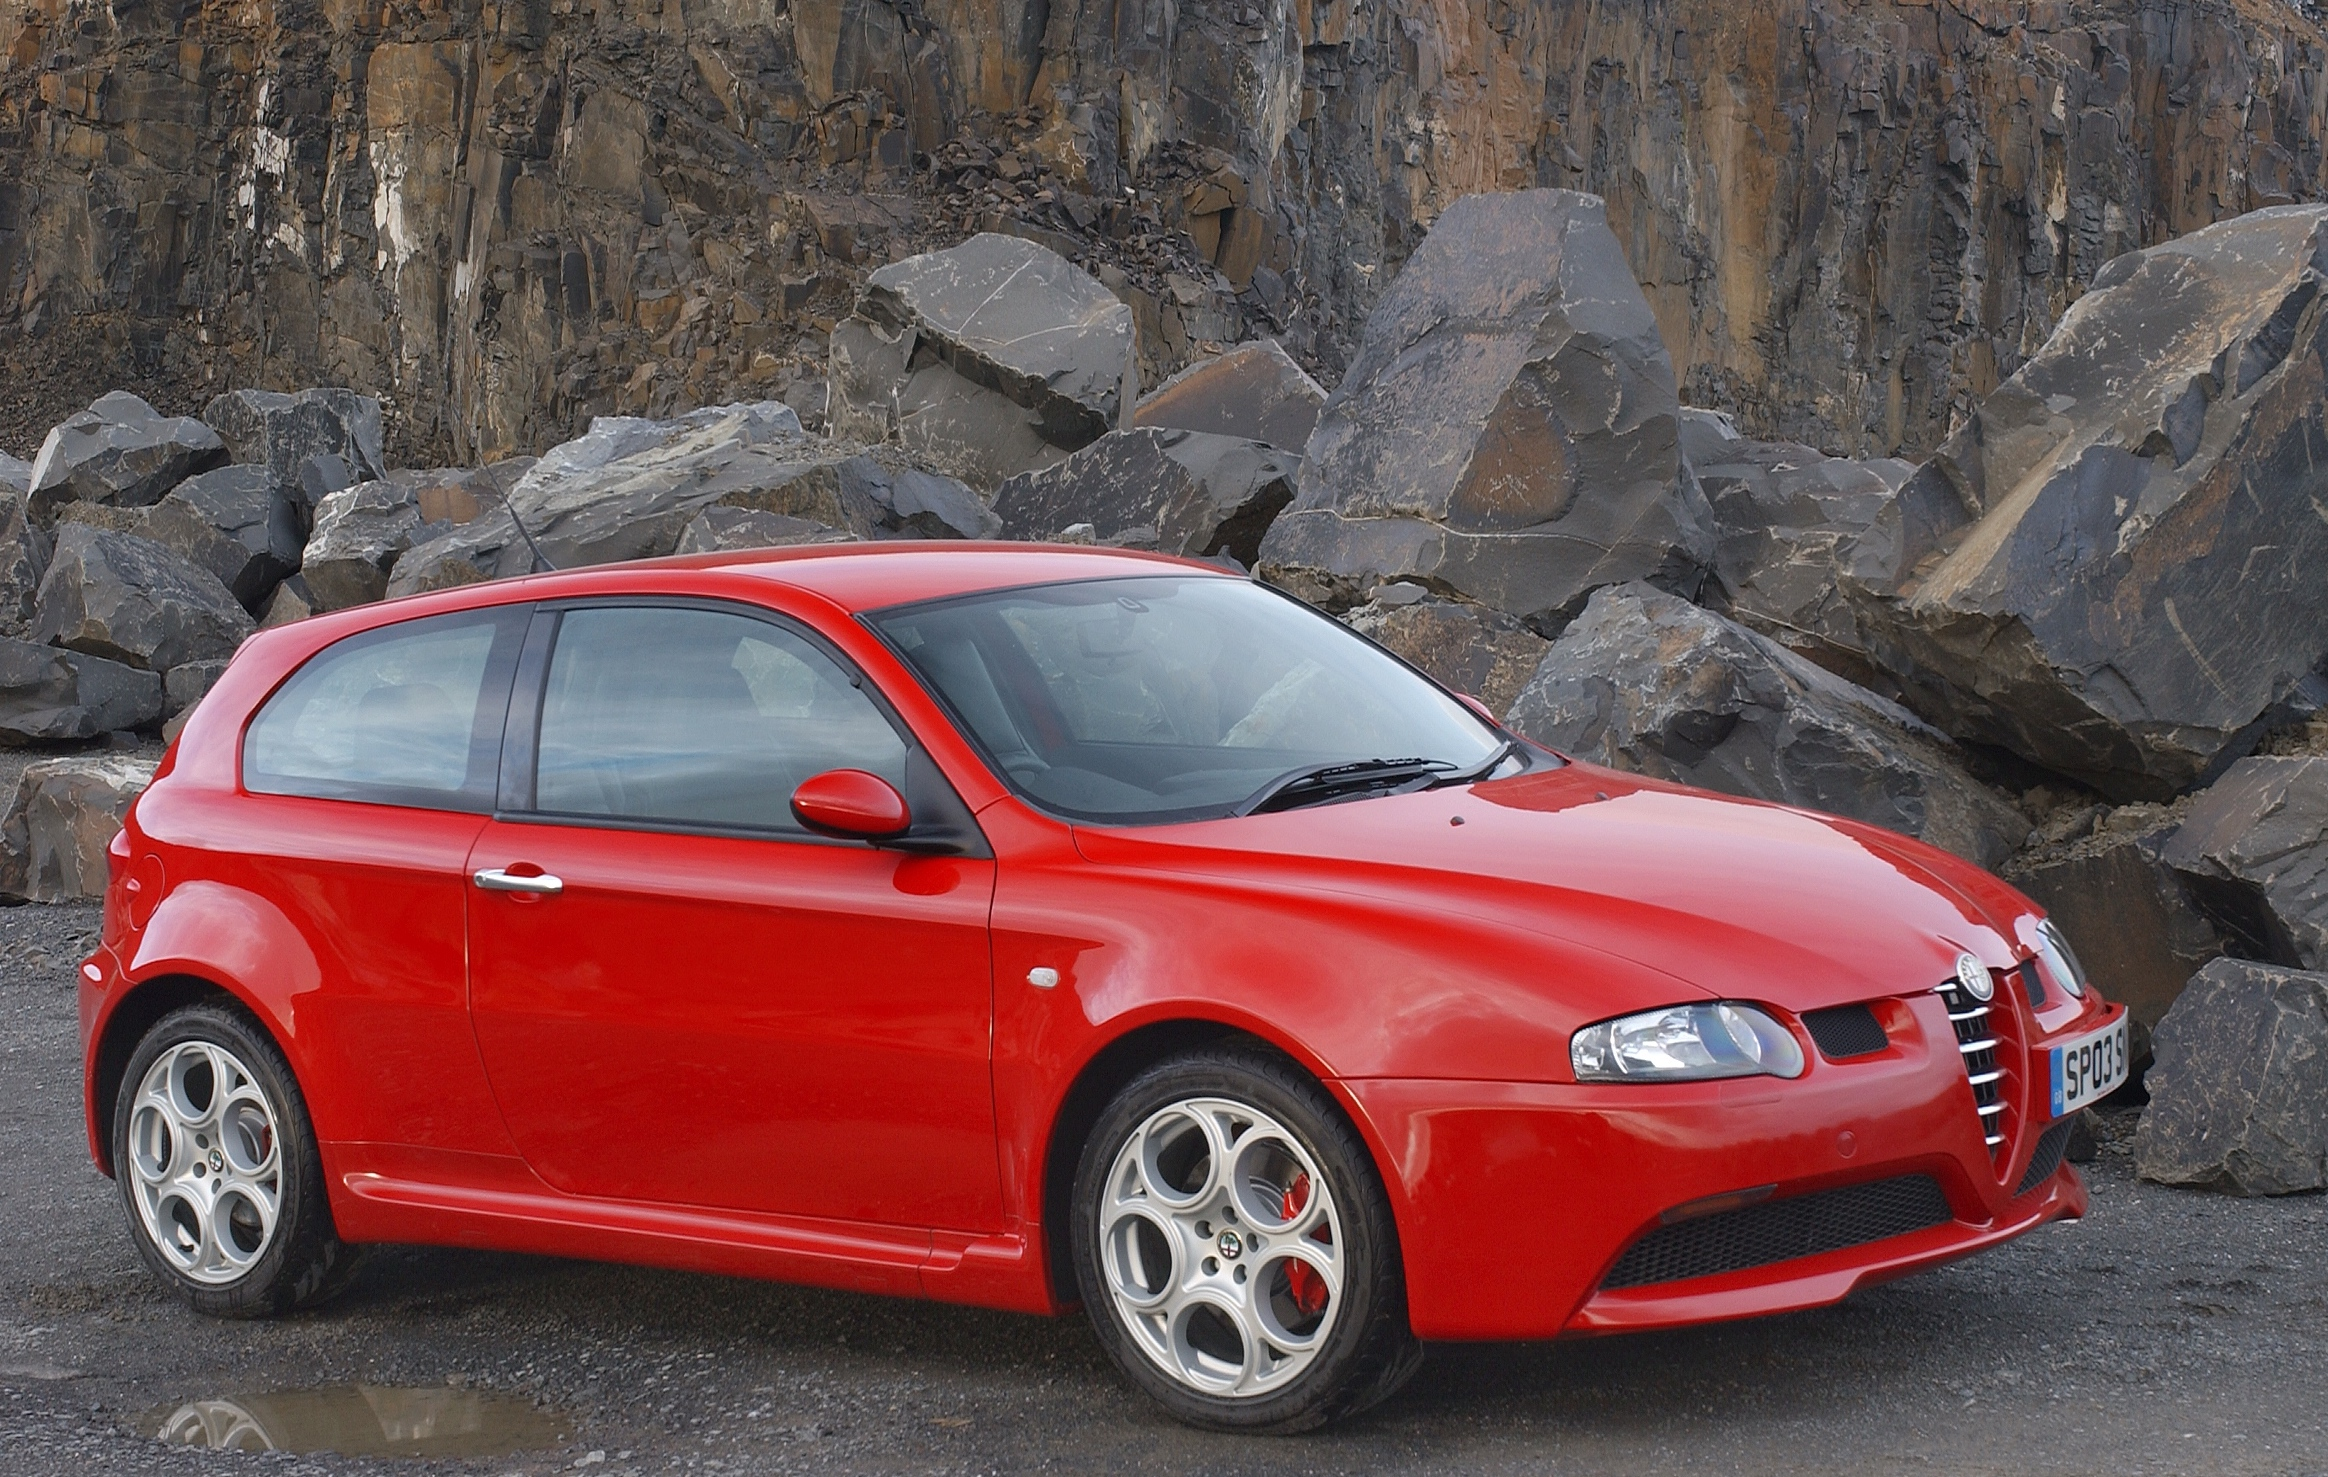 Alfa's 147 GTA packed a whopping V6 engine